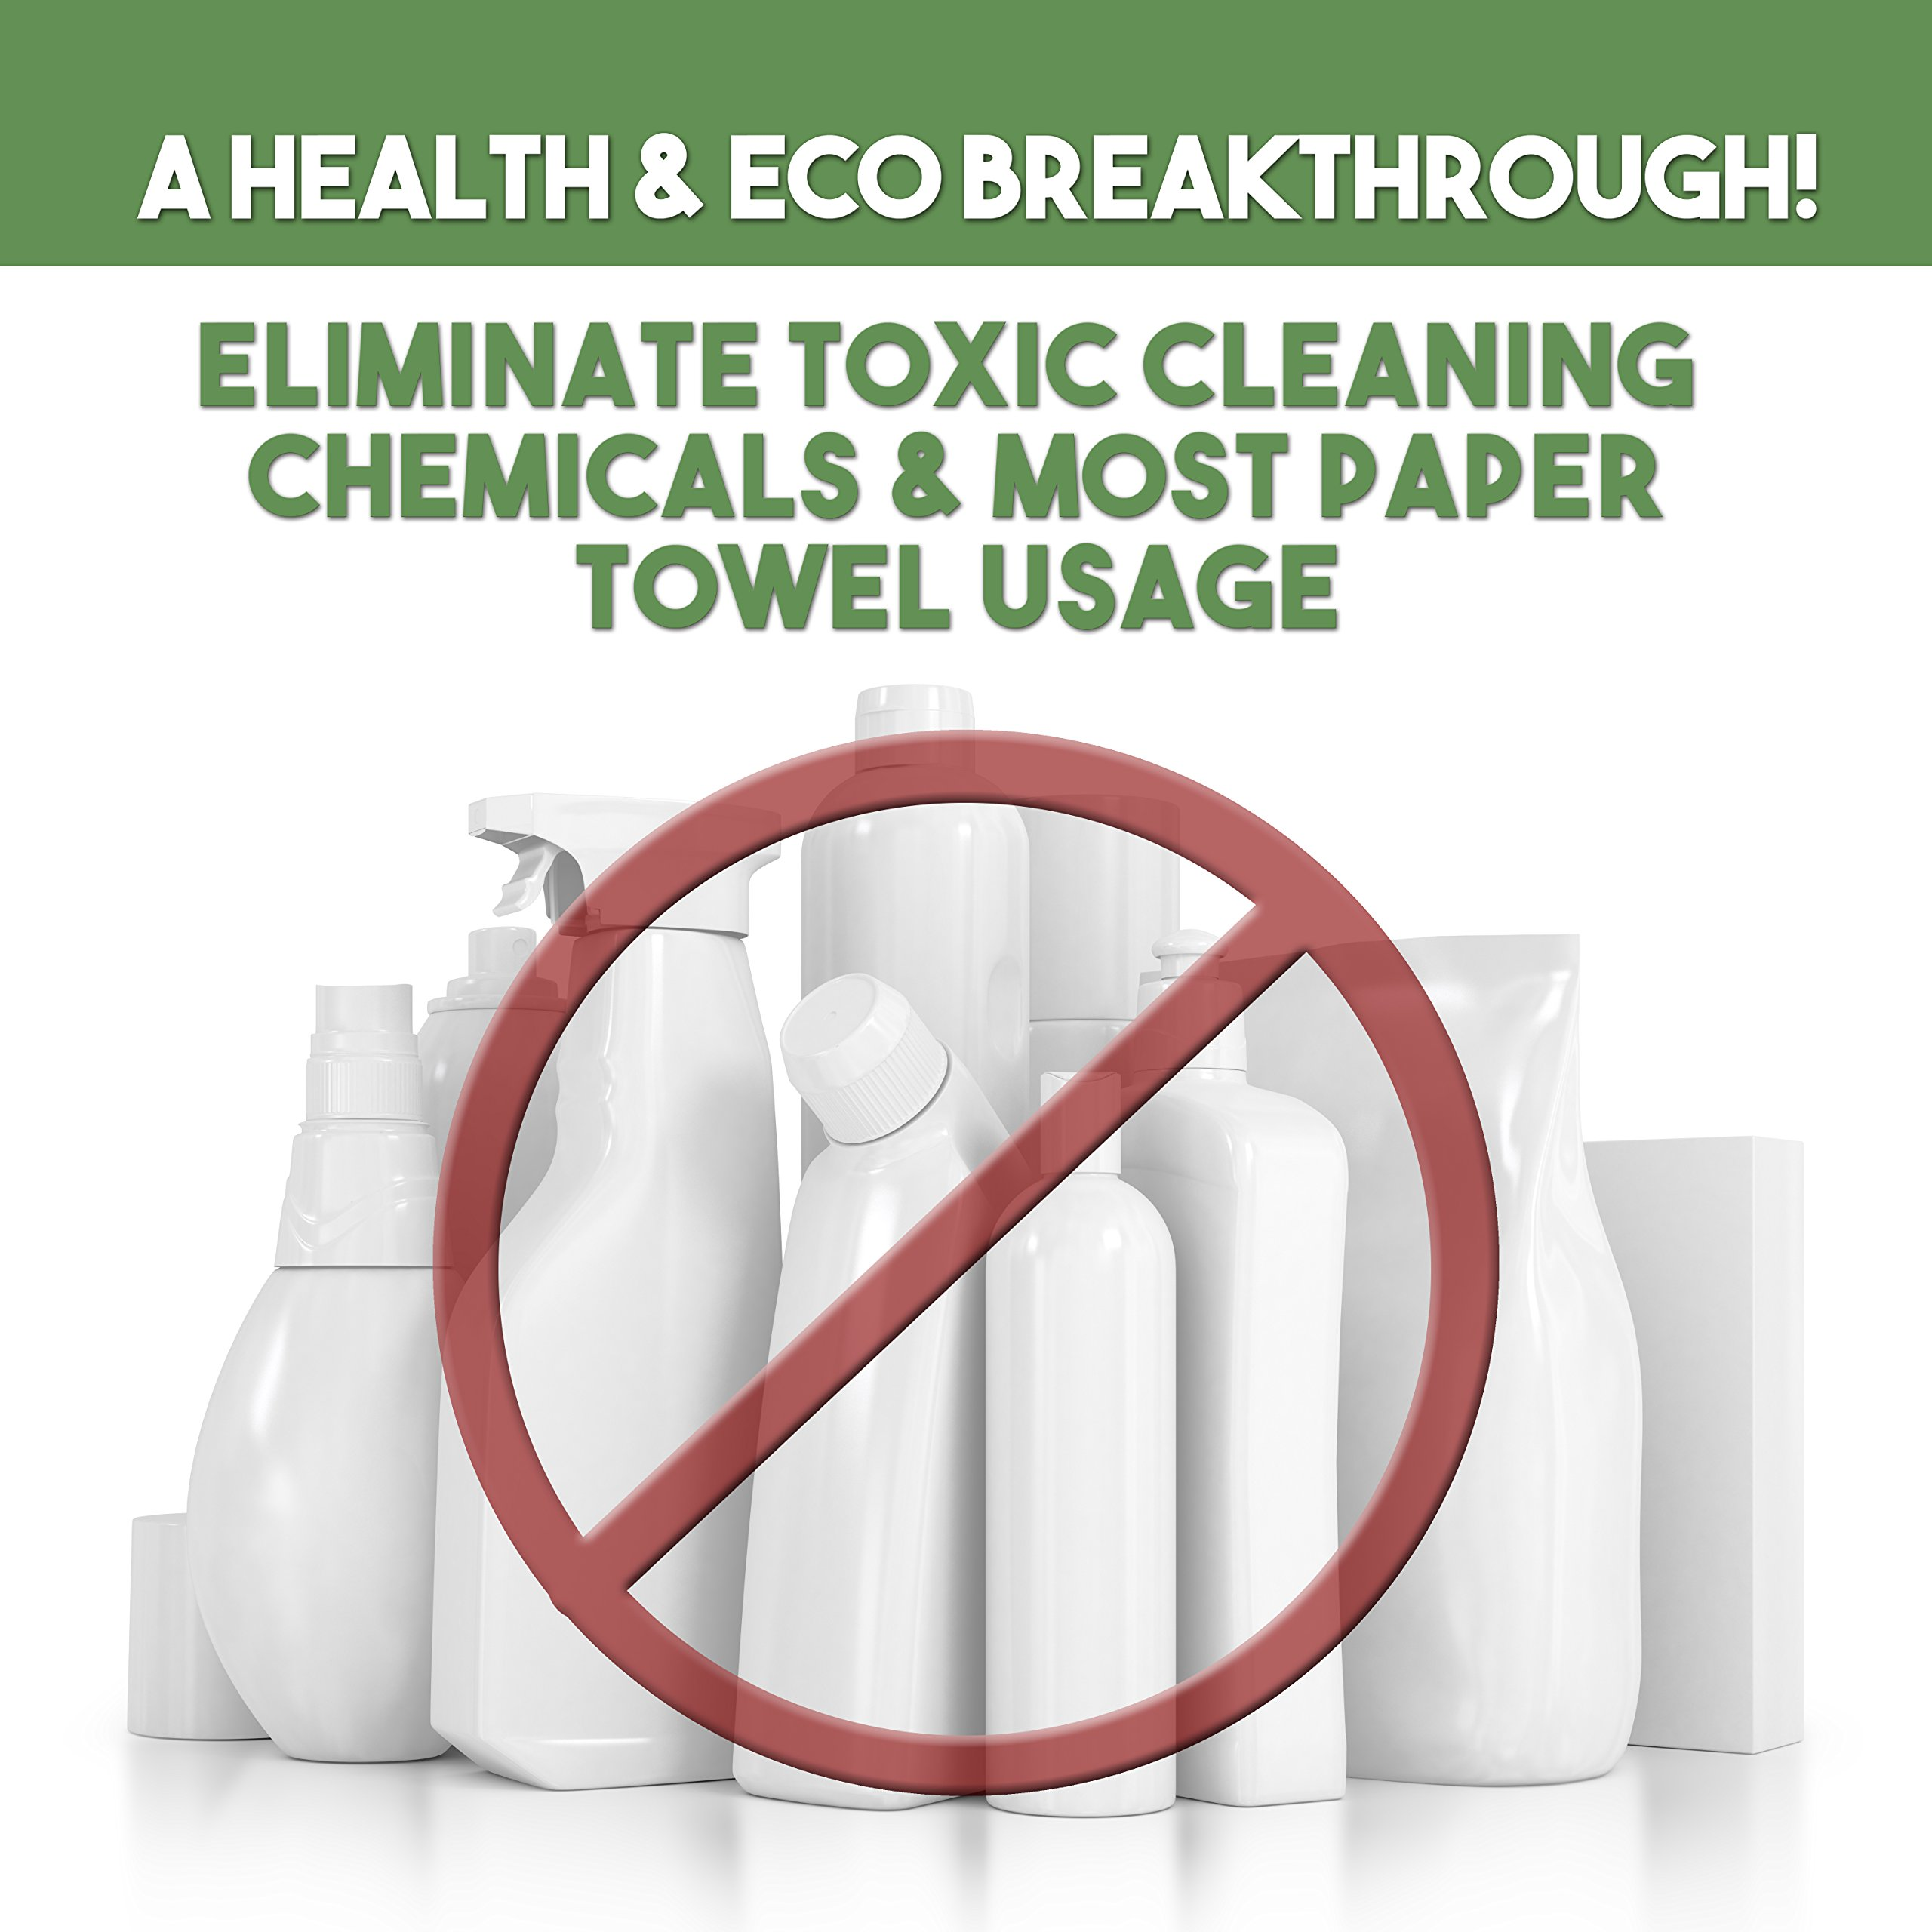 Life Miracle Nano Towels SUPERSIZED The Breakthrough Fabric That Replaces Paper Towels and Toxic Chemical Cleaners. Use As Bath Towels, Kitchen Towels, etc. All Purpose Cleaning Wipes 26x18 by Life Miracle (Image #7)